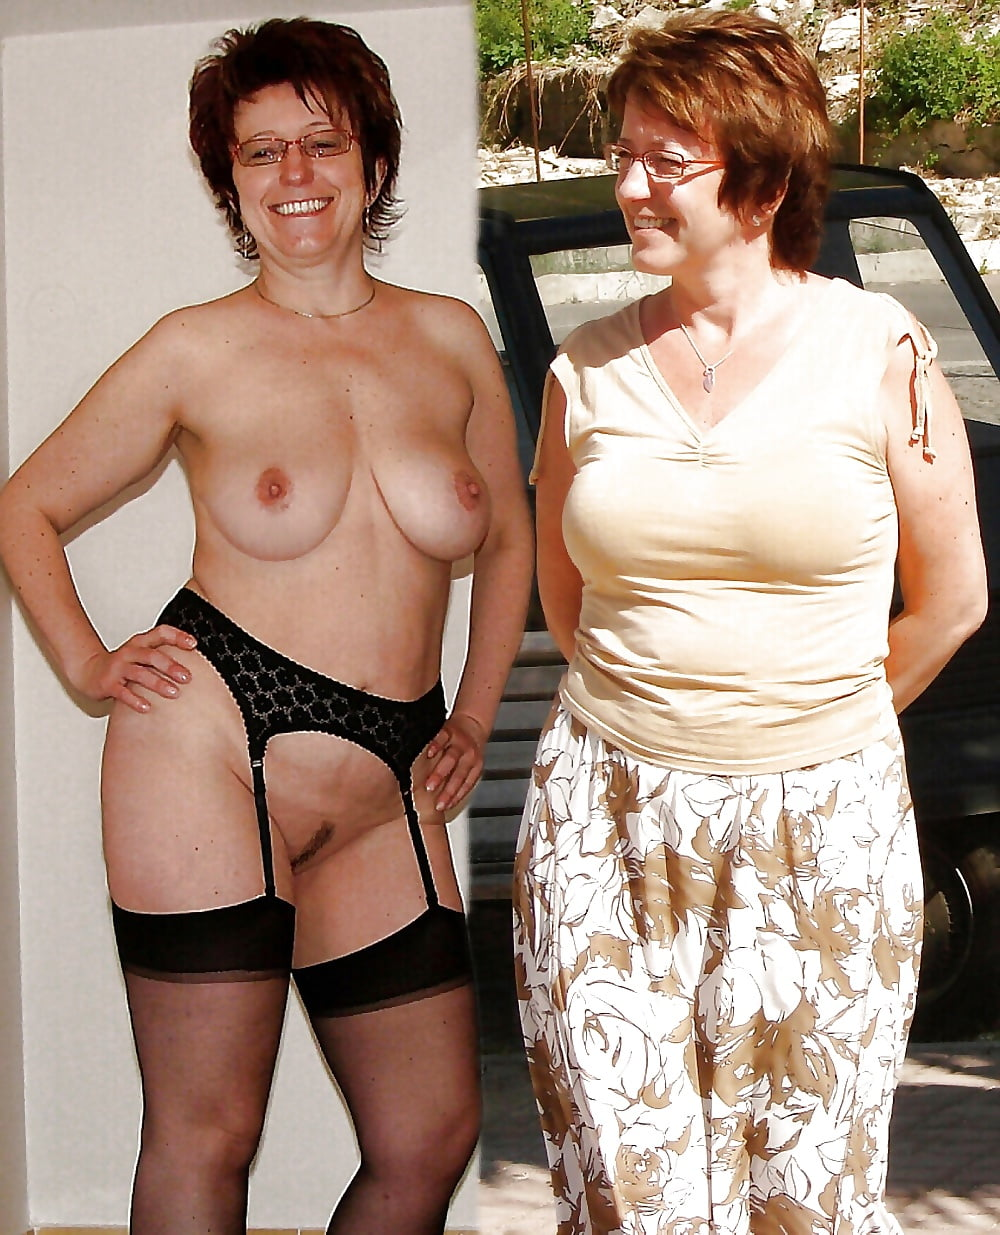 wifeys-annette-mature-undressing-maid-pictures